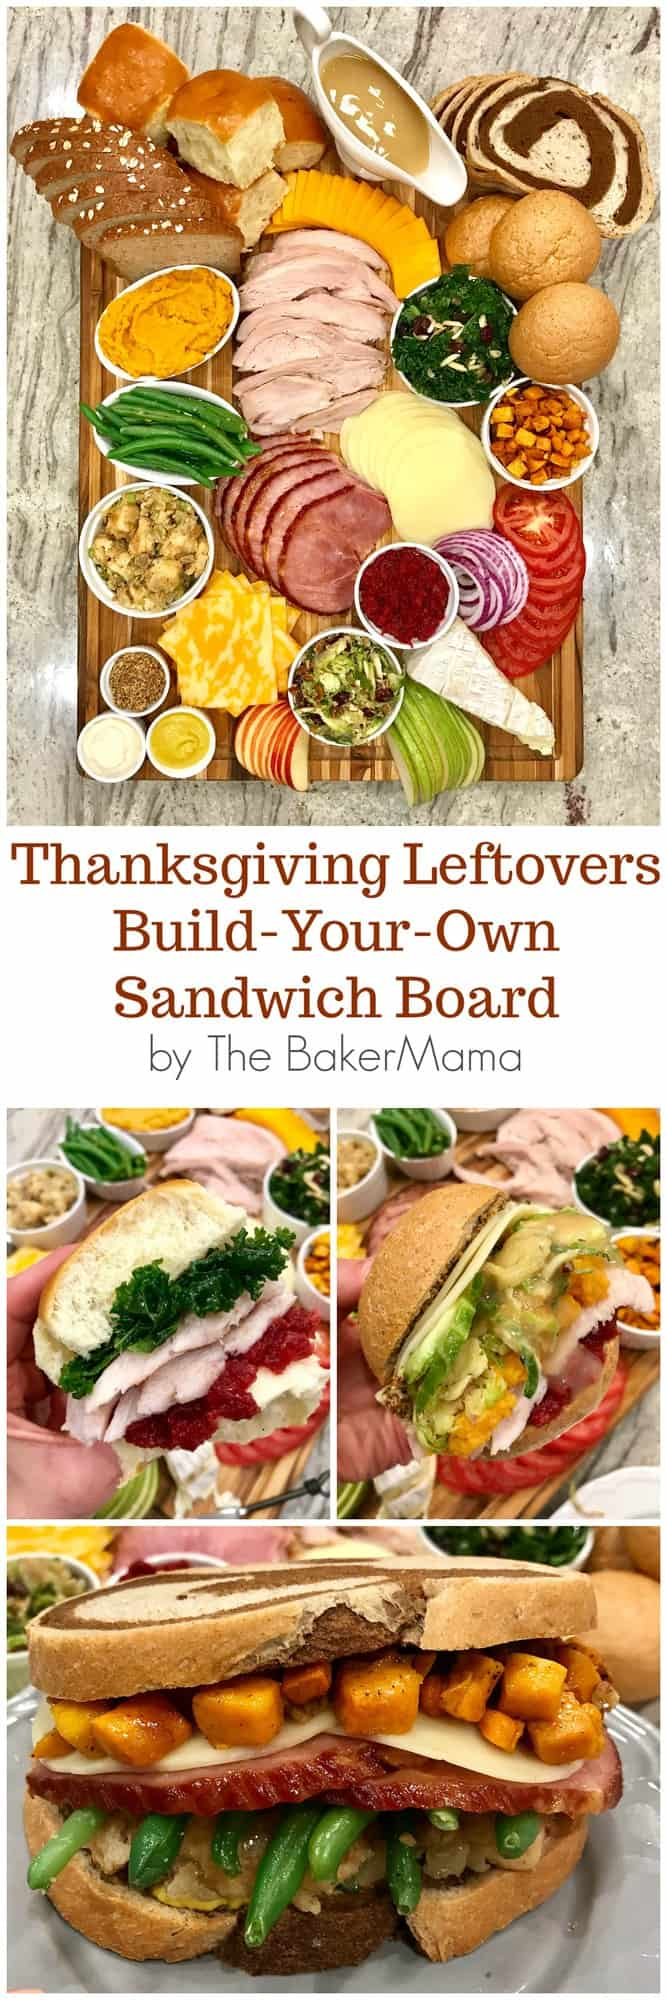 Thanksgiving Leftovers Sandwich Board by The BakerMama